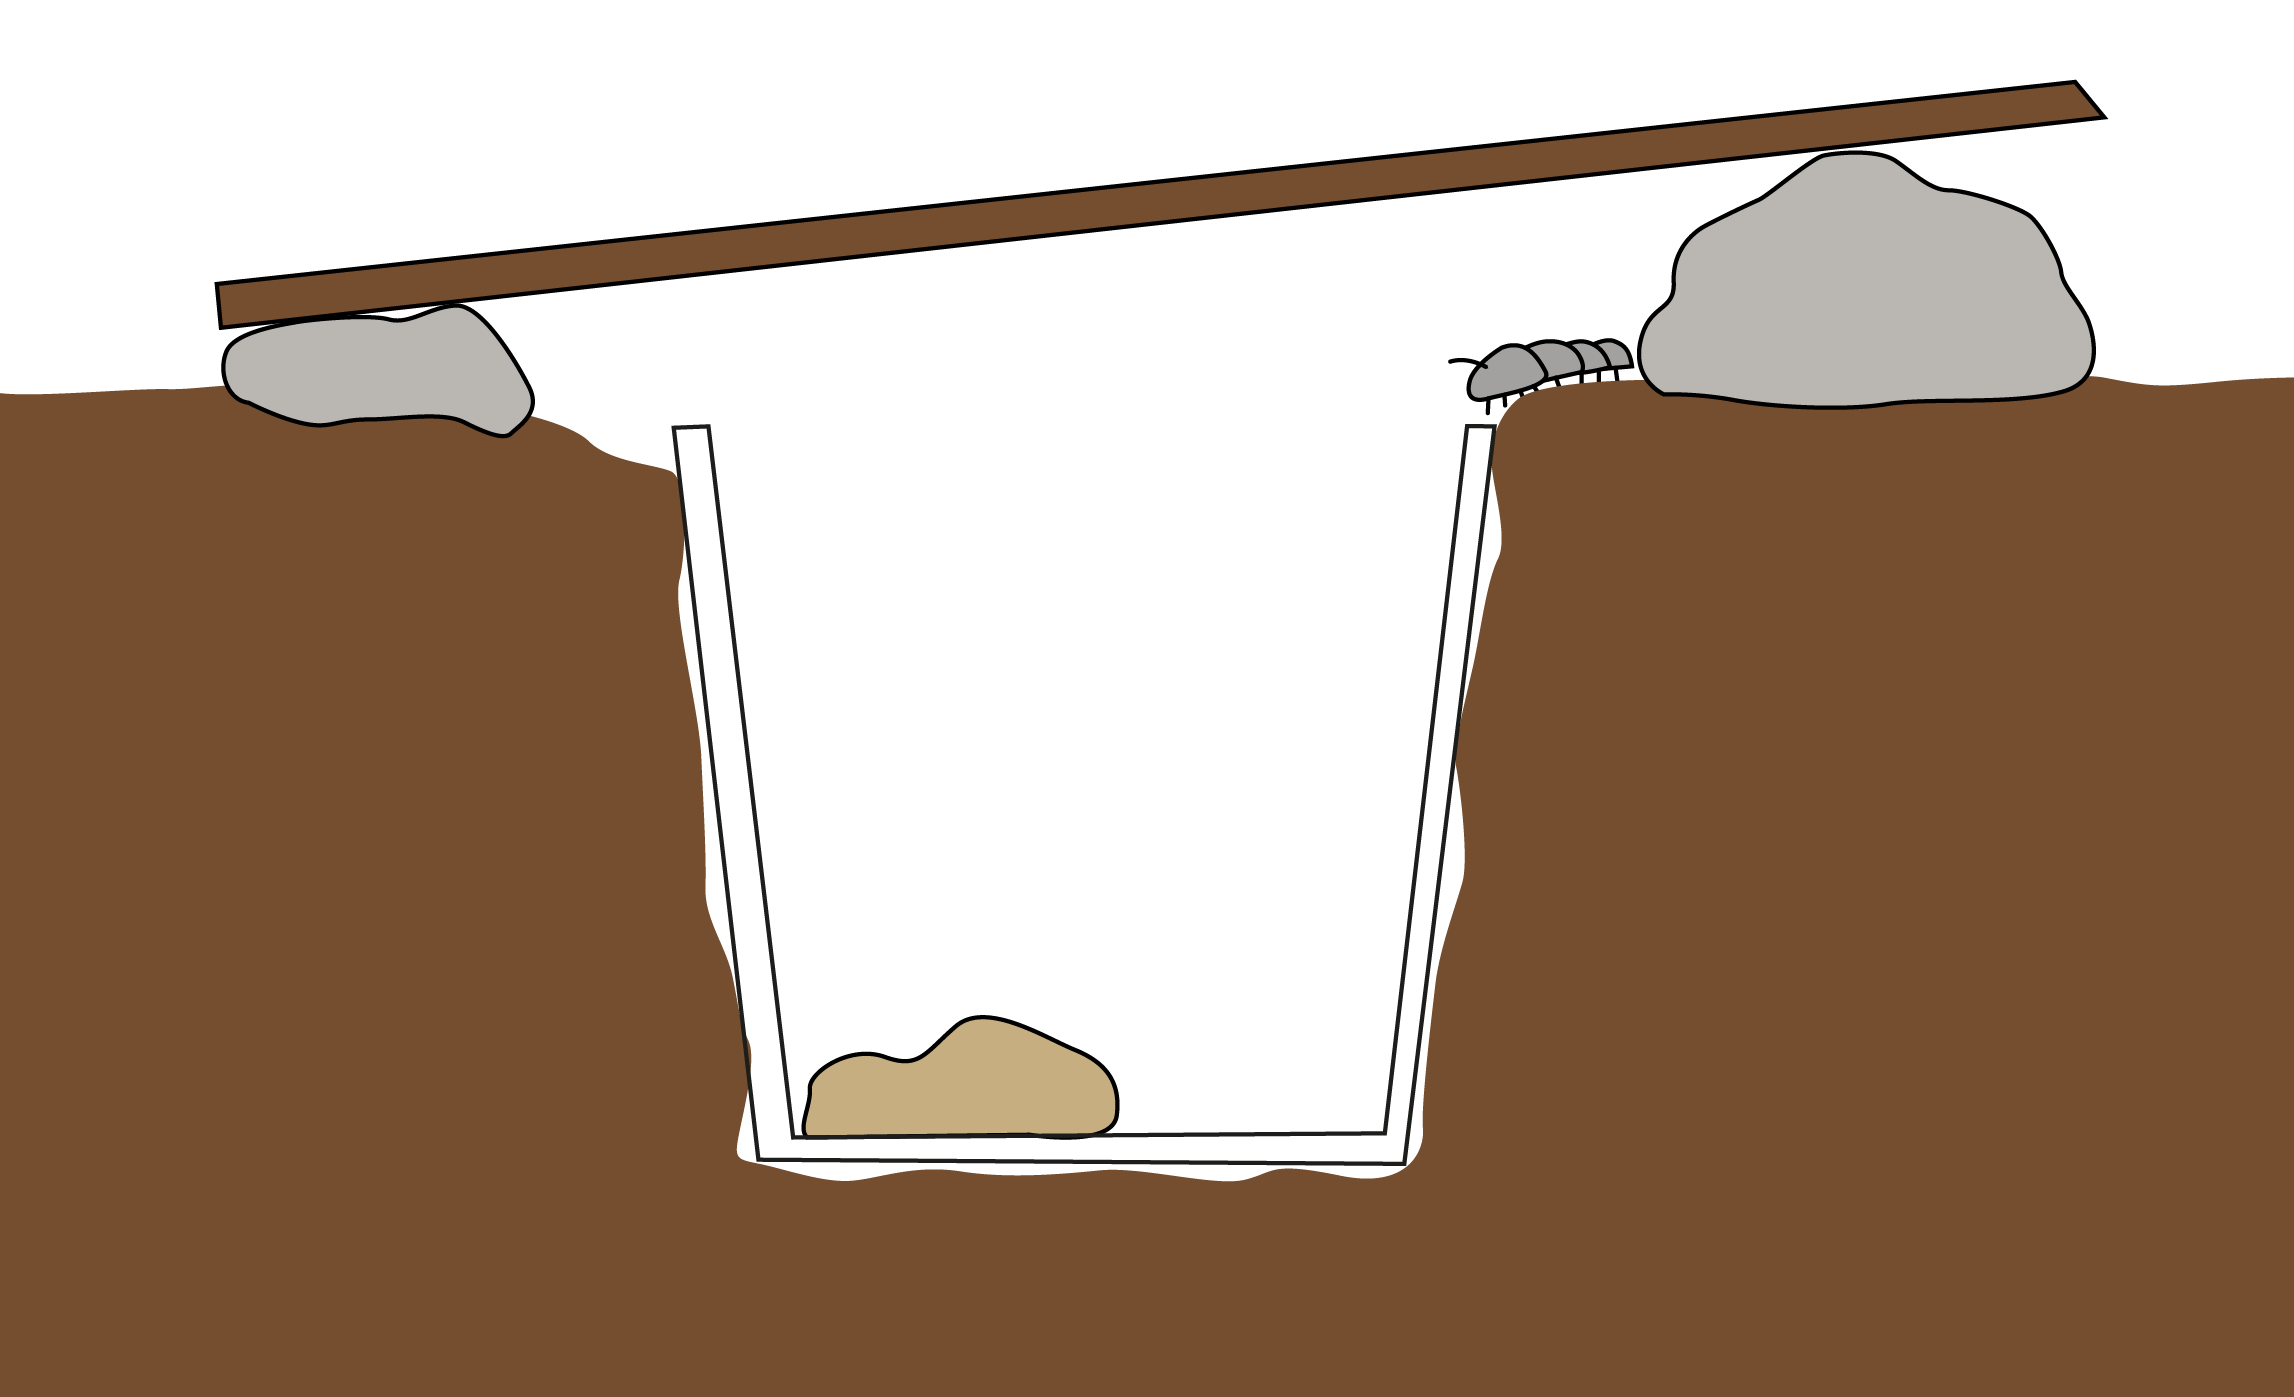 Image of a pitfall trap